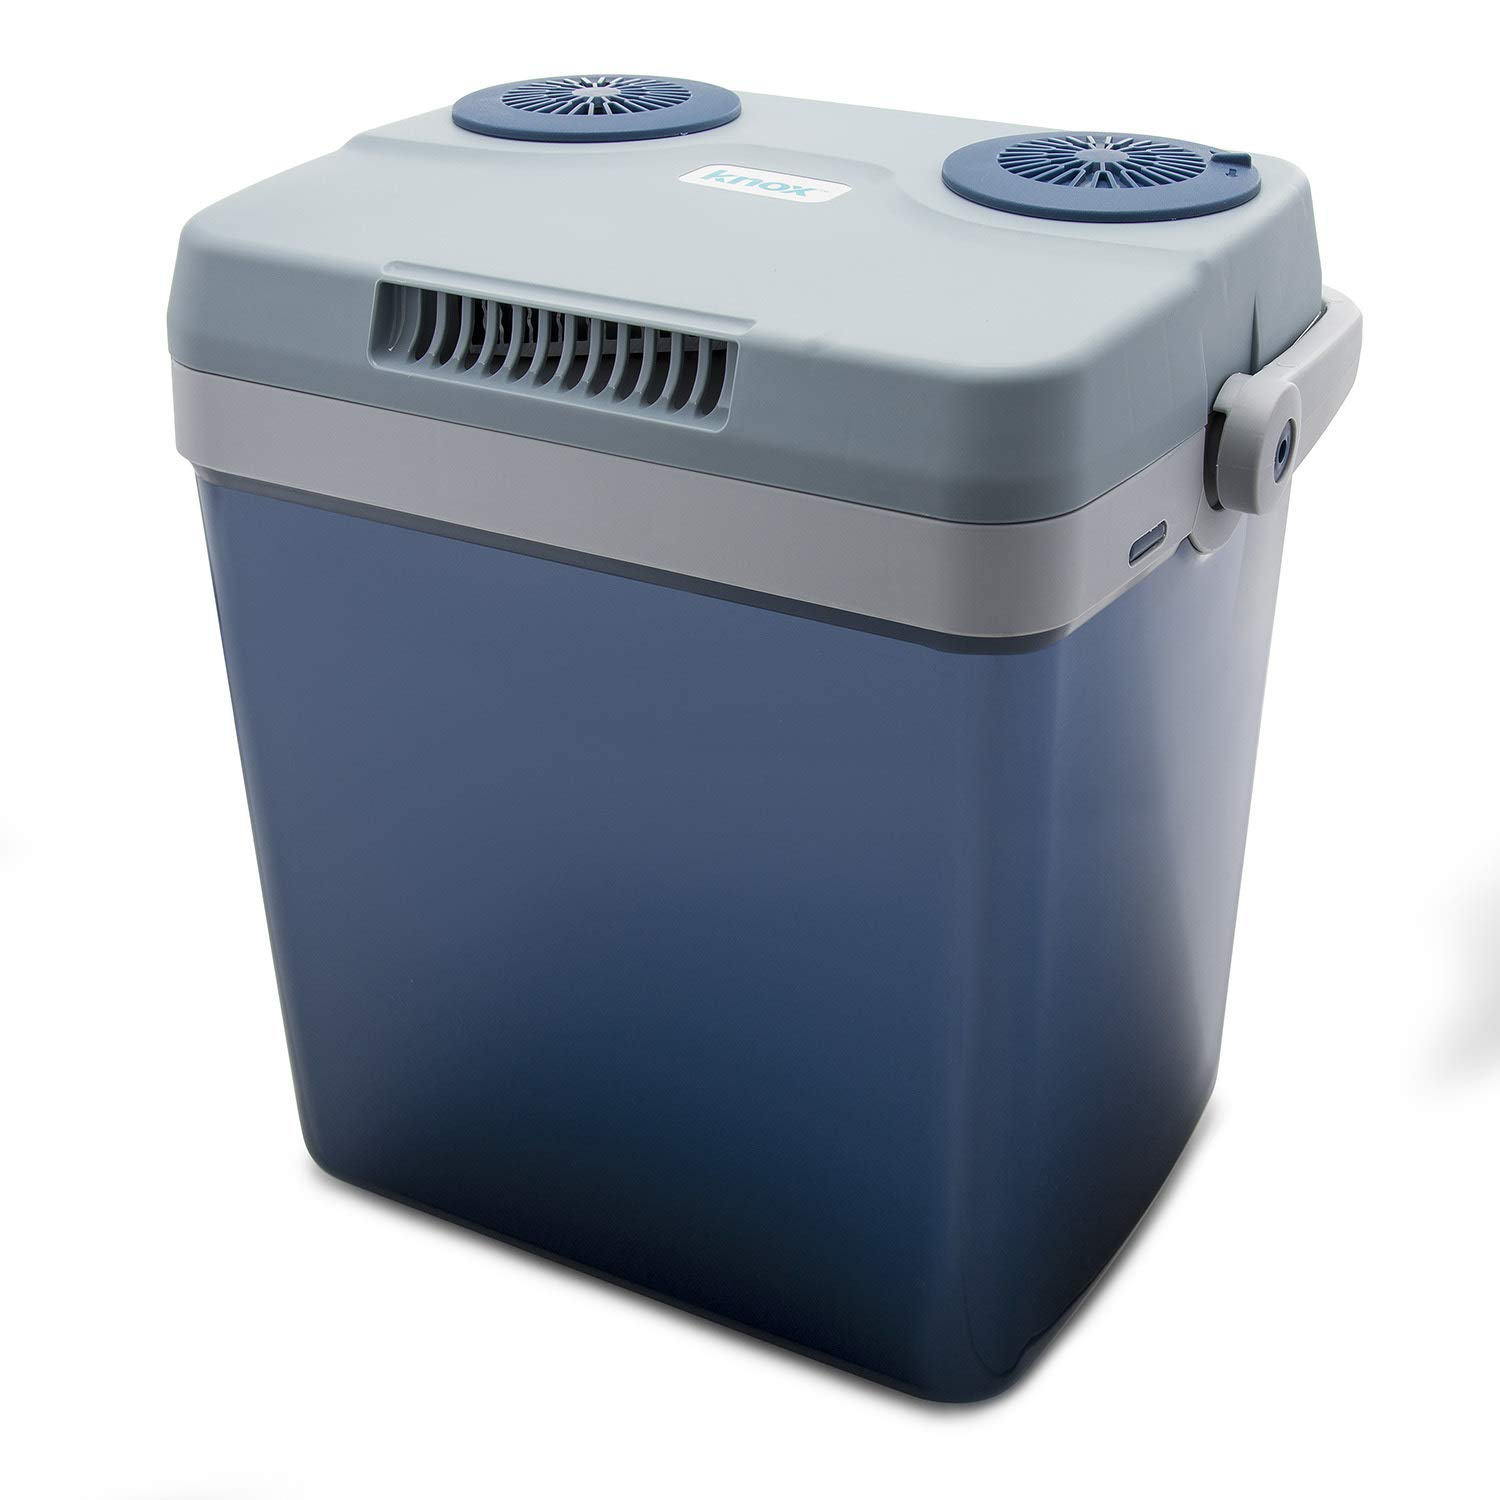 Knox Electric Cooler and Warmer for Car and Home with Automatic Locking Handle - 27 Quart (25 Liter) - Holds 30 Cans - Dual 110V AC House and 12V DC Vehicle Plugs by Knox